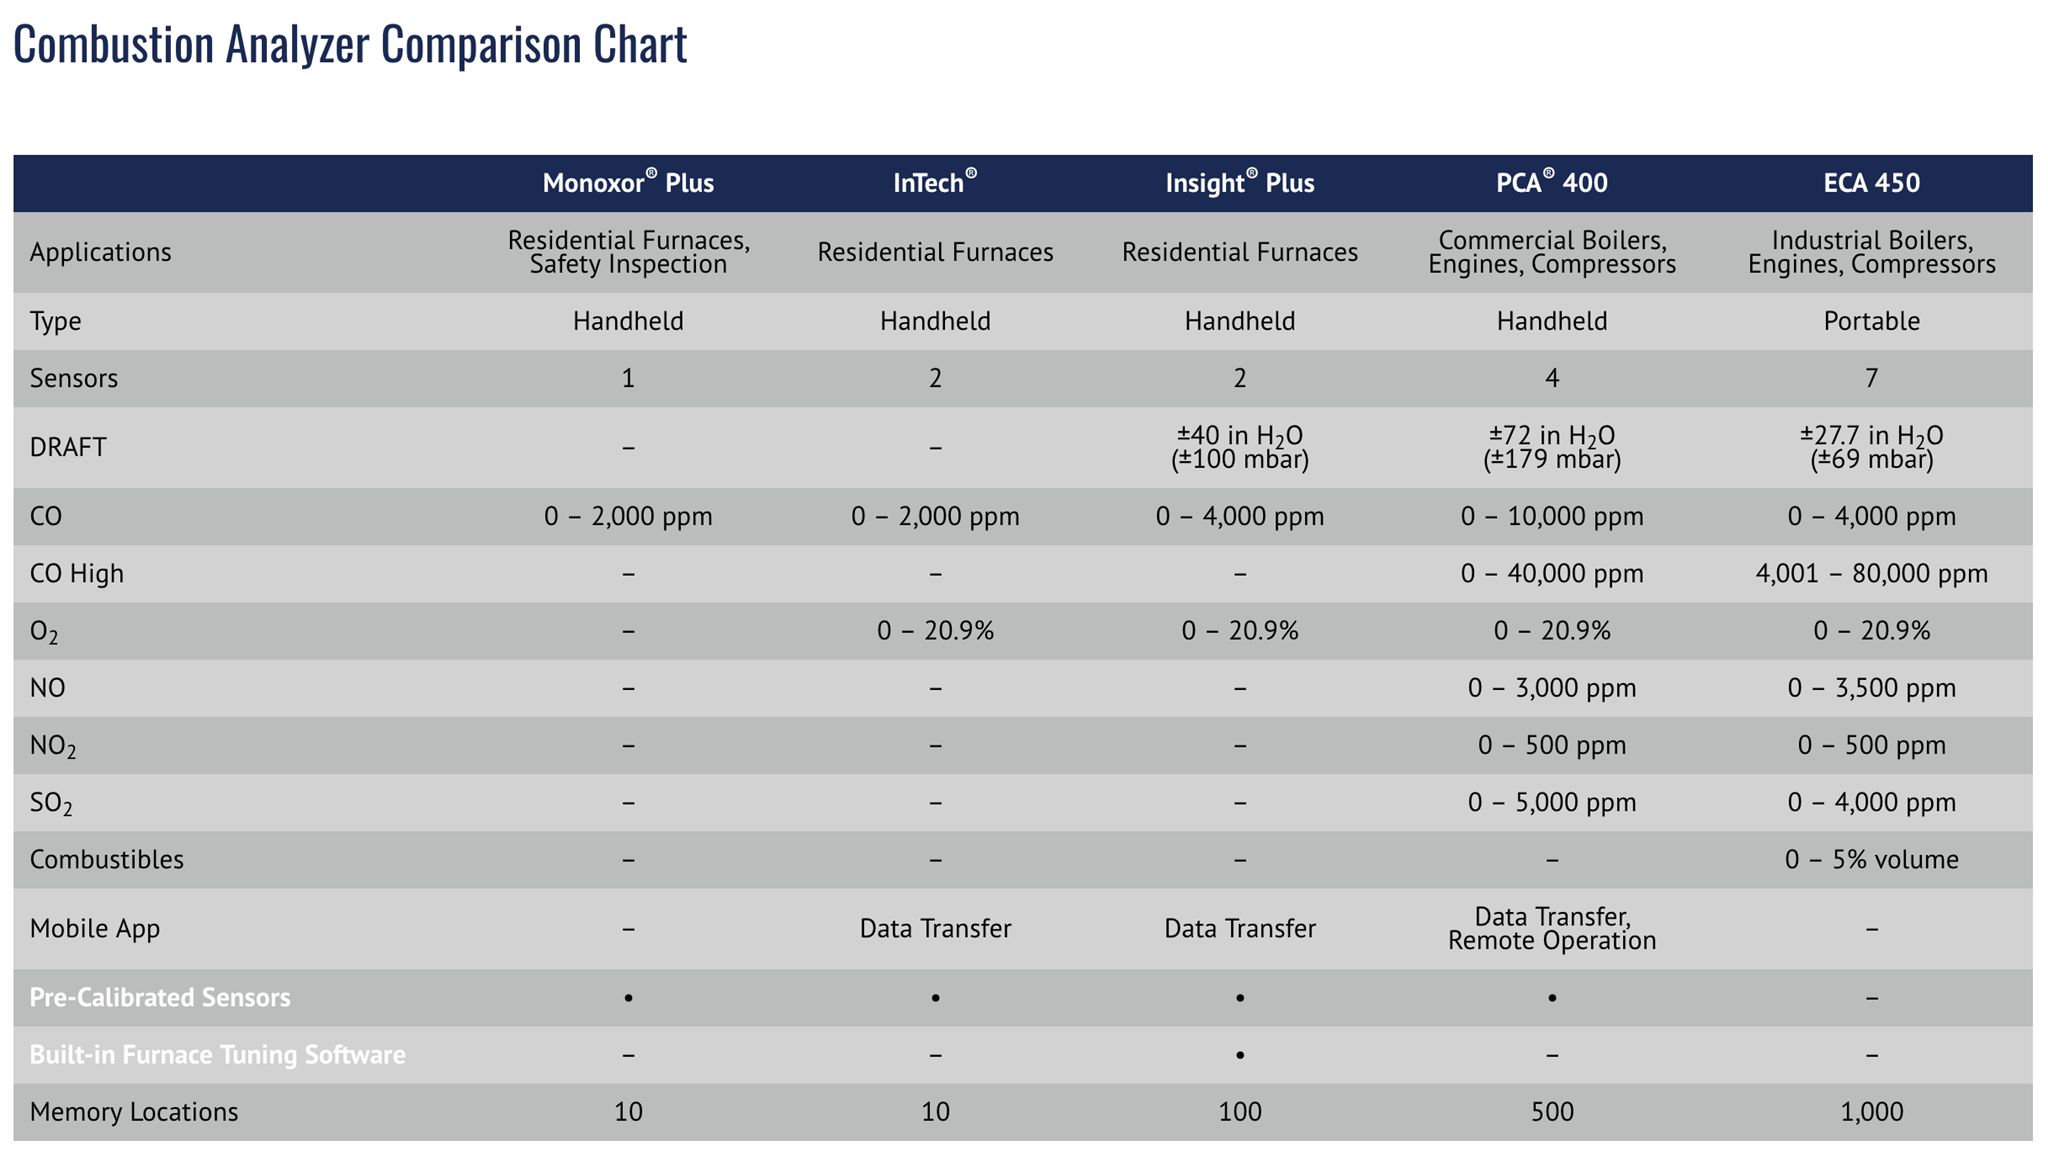 Bacharach Combistion Comparison Chart